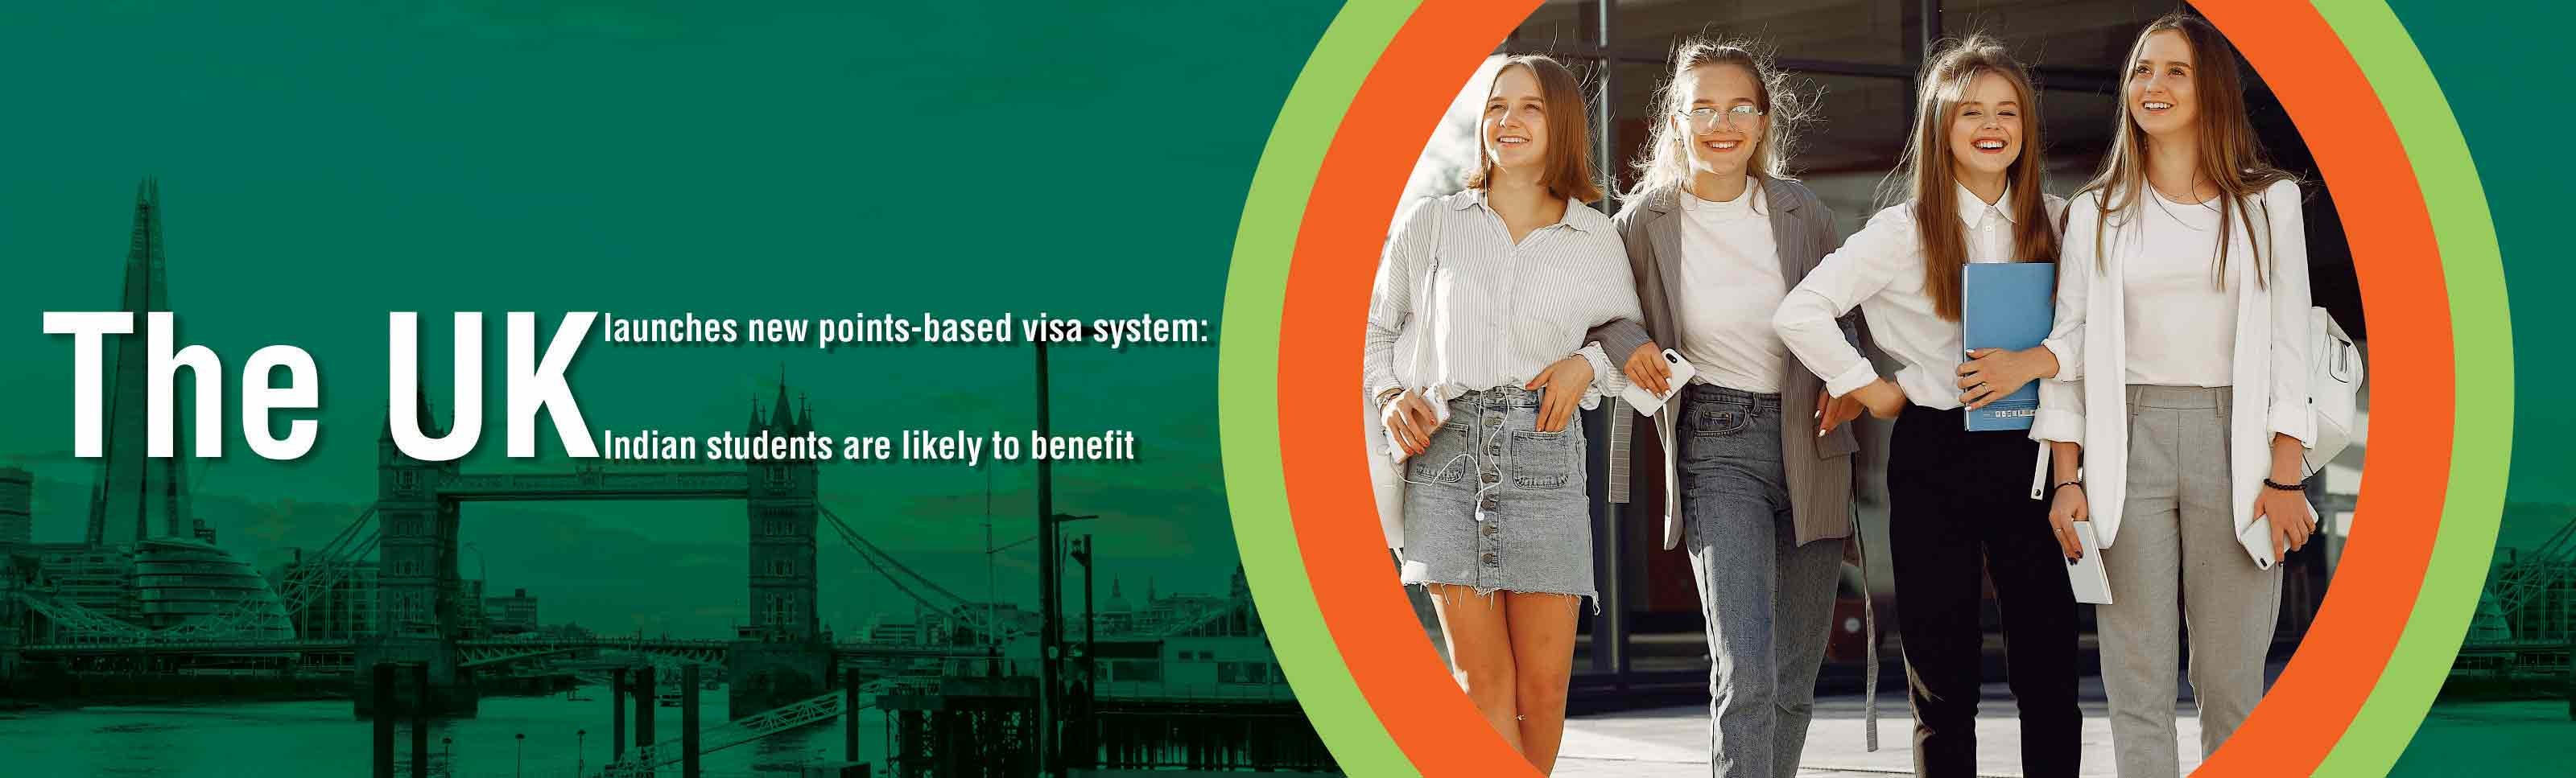 The UK launches new points-based visa system: Indian students are likely to benefit